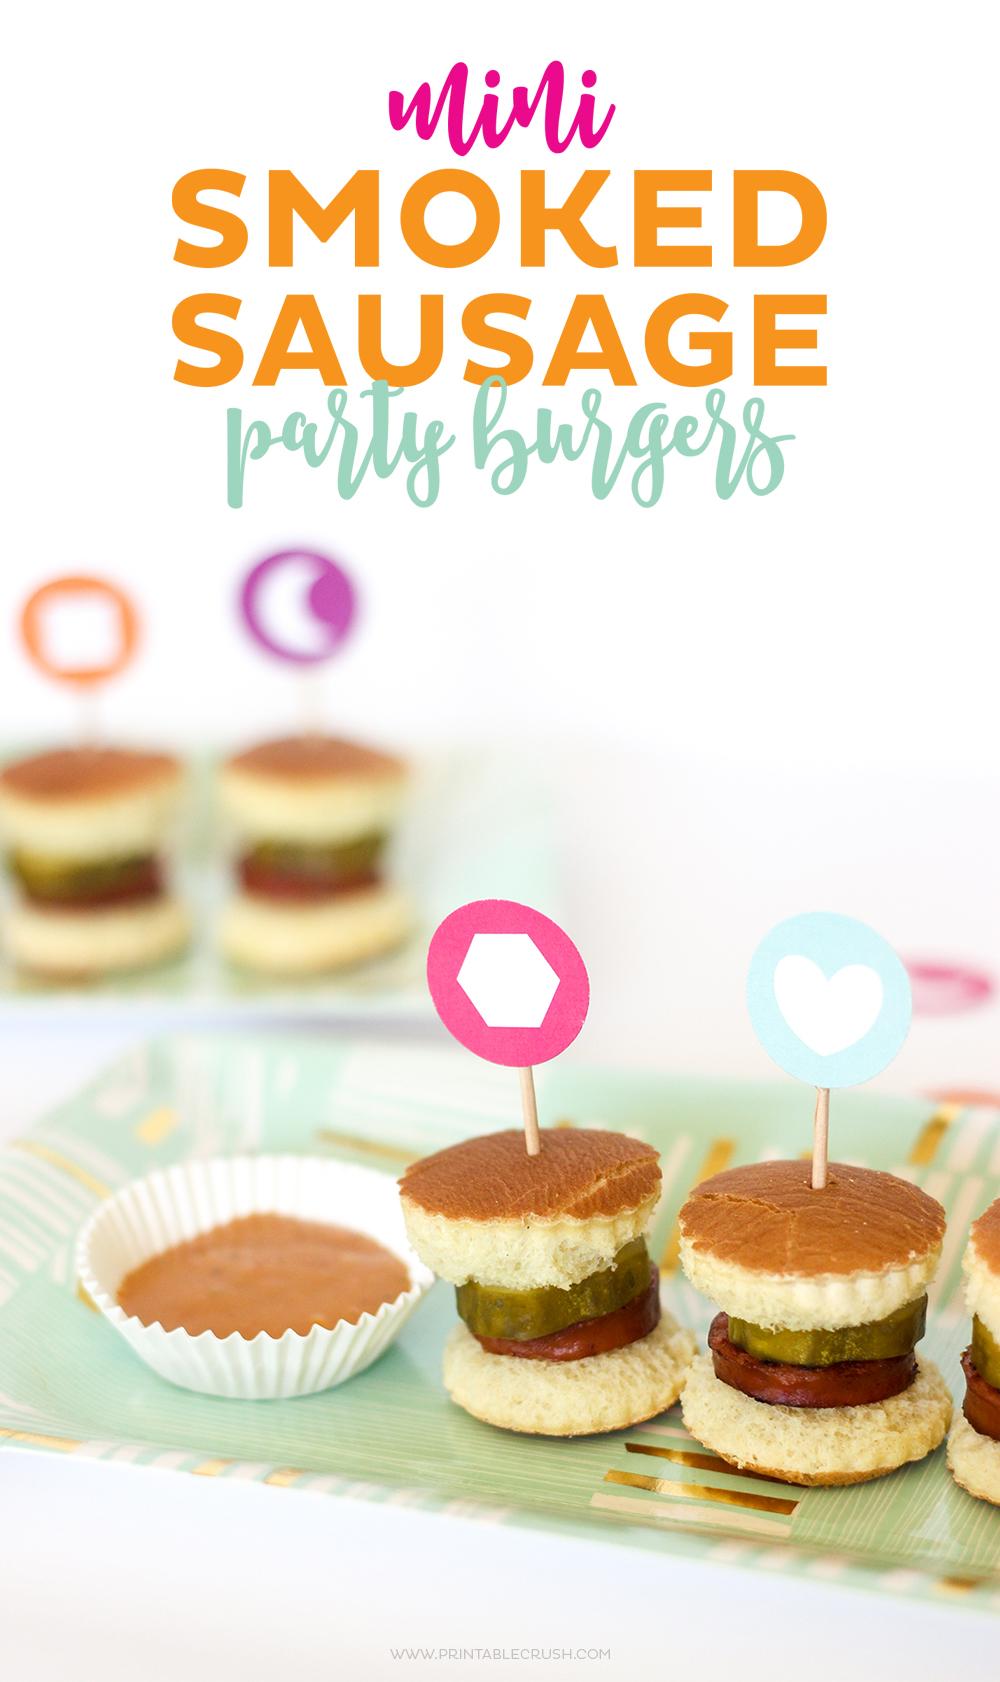 These mini smoked sausage burgers would be perfect for a party or after school snack! They're super cute and easy!